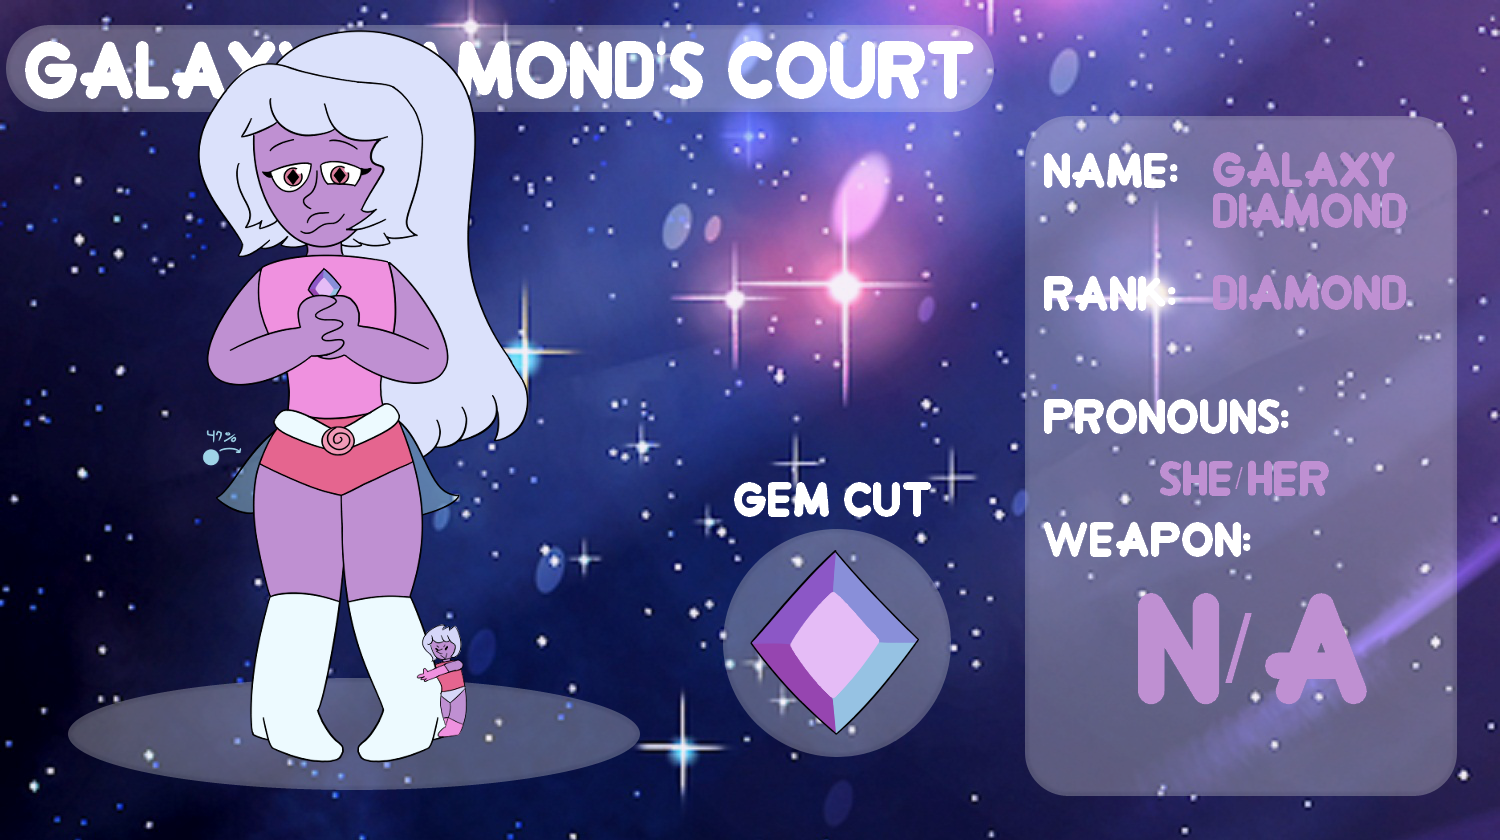 (OLD) OC Galaxy Diamond Court - Galaxy Diamond App by netflixandsapphire